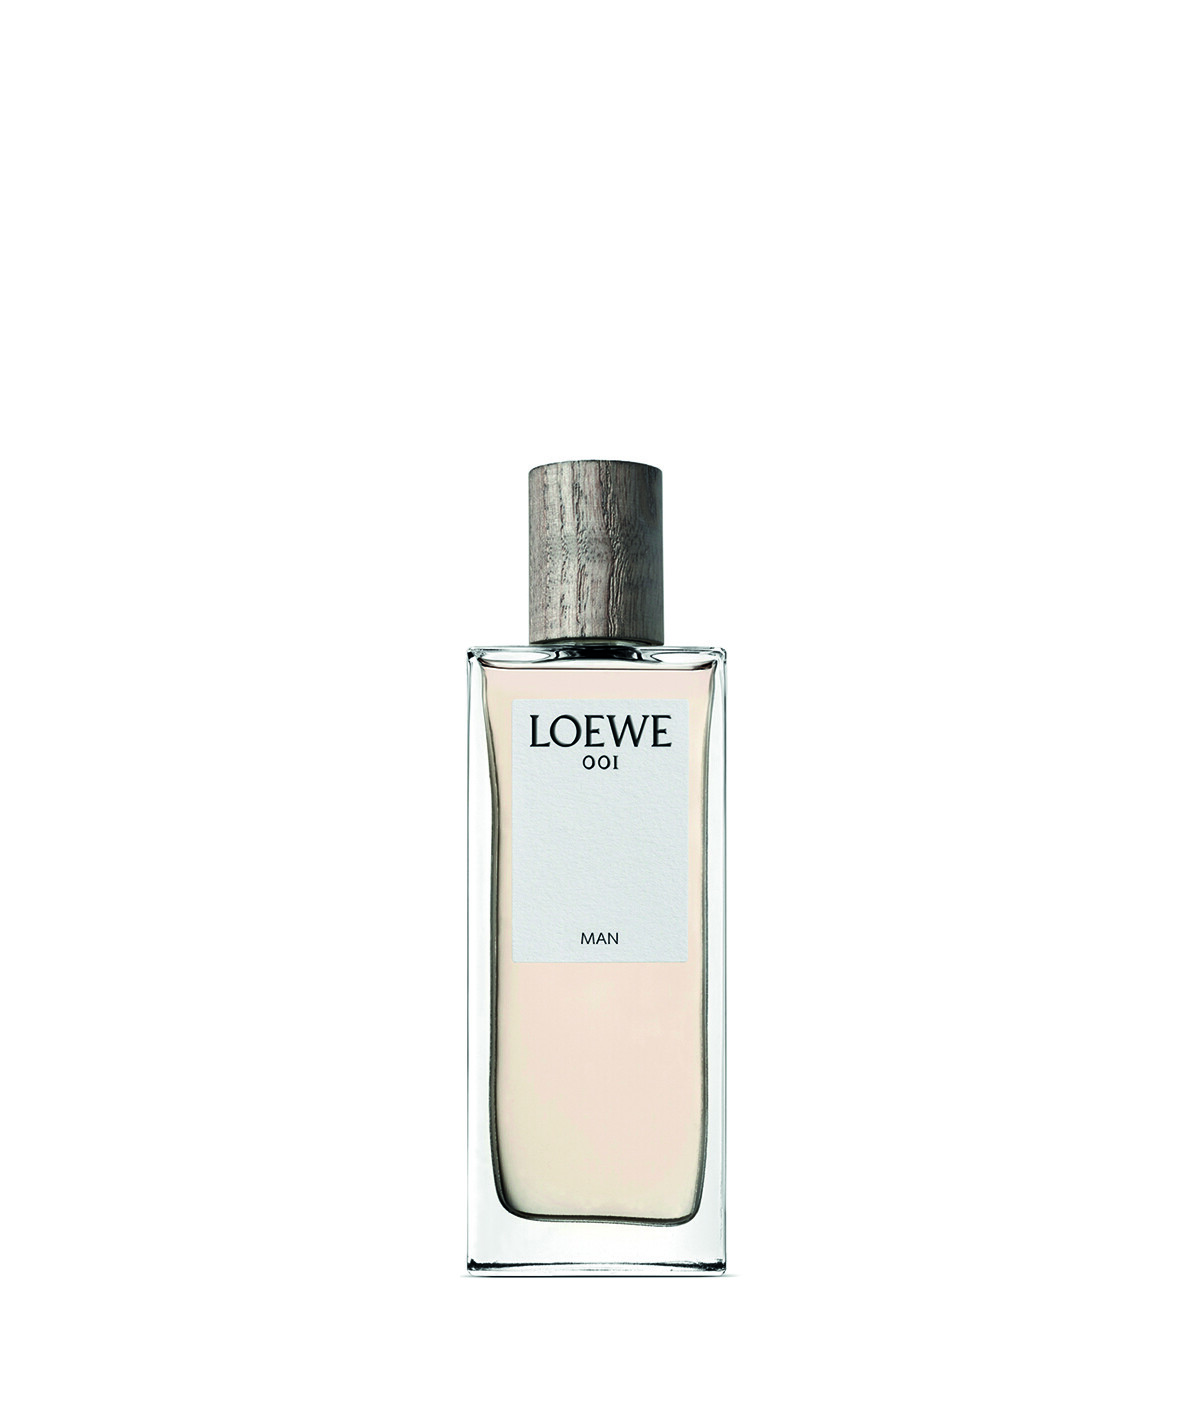 LOEWE Loewe 001 Man Edp 50 Ml V Colourless front